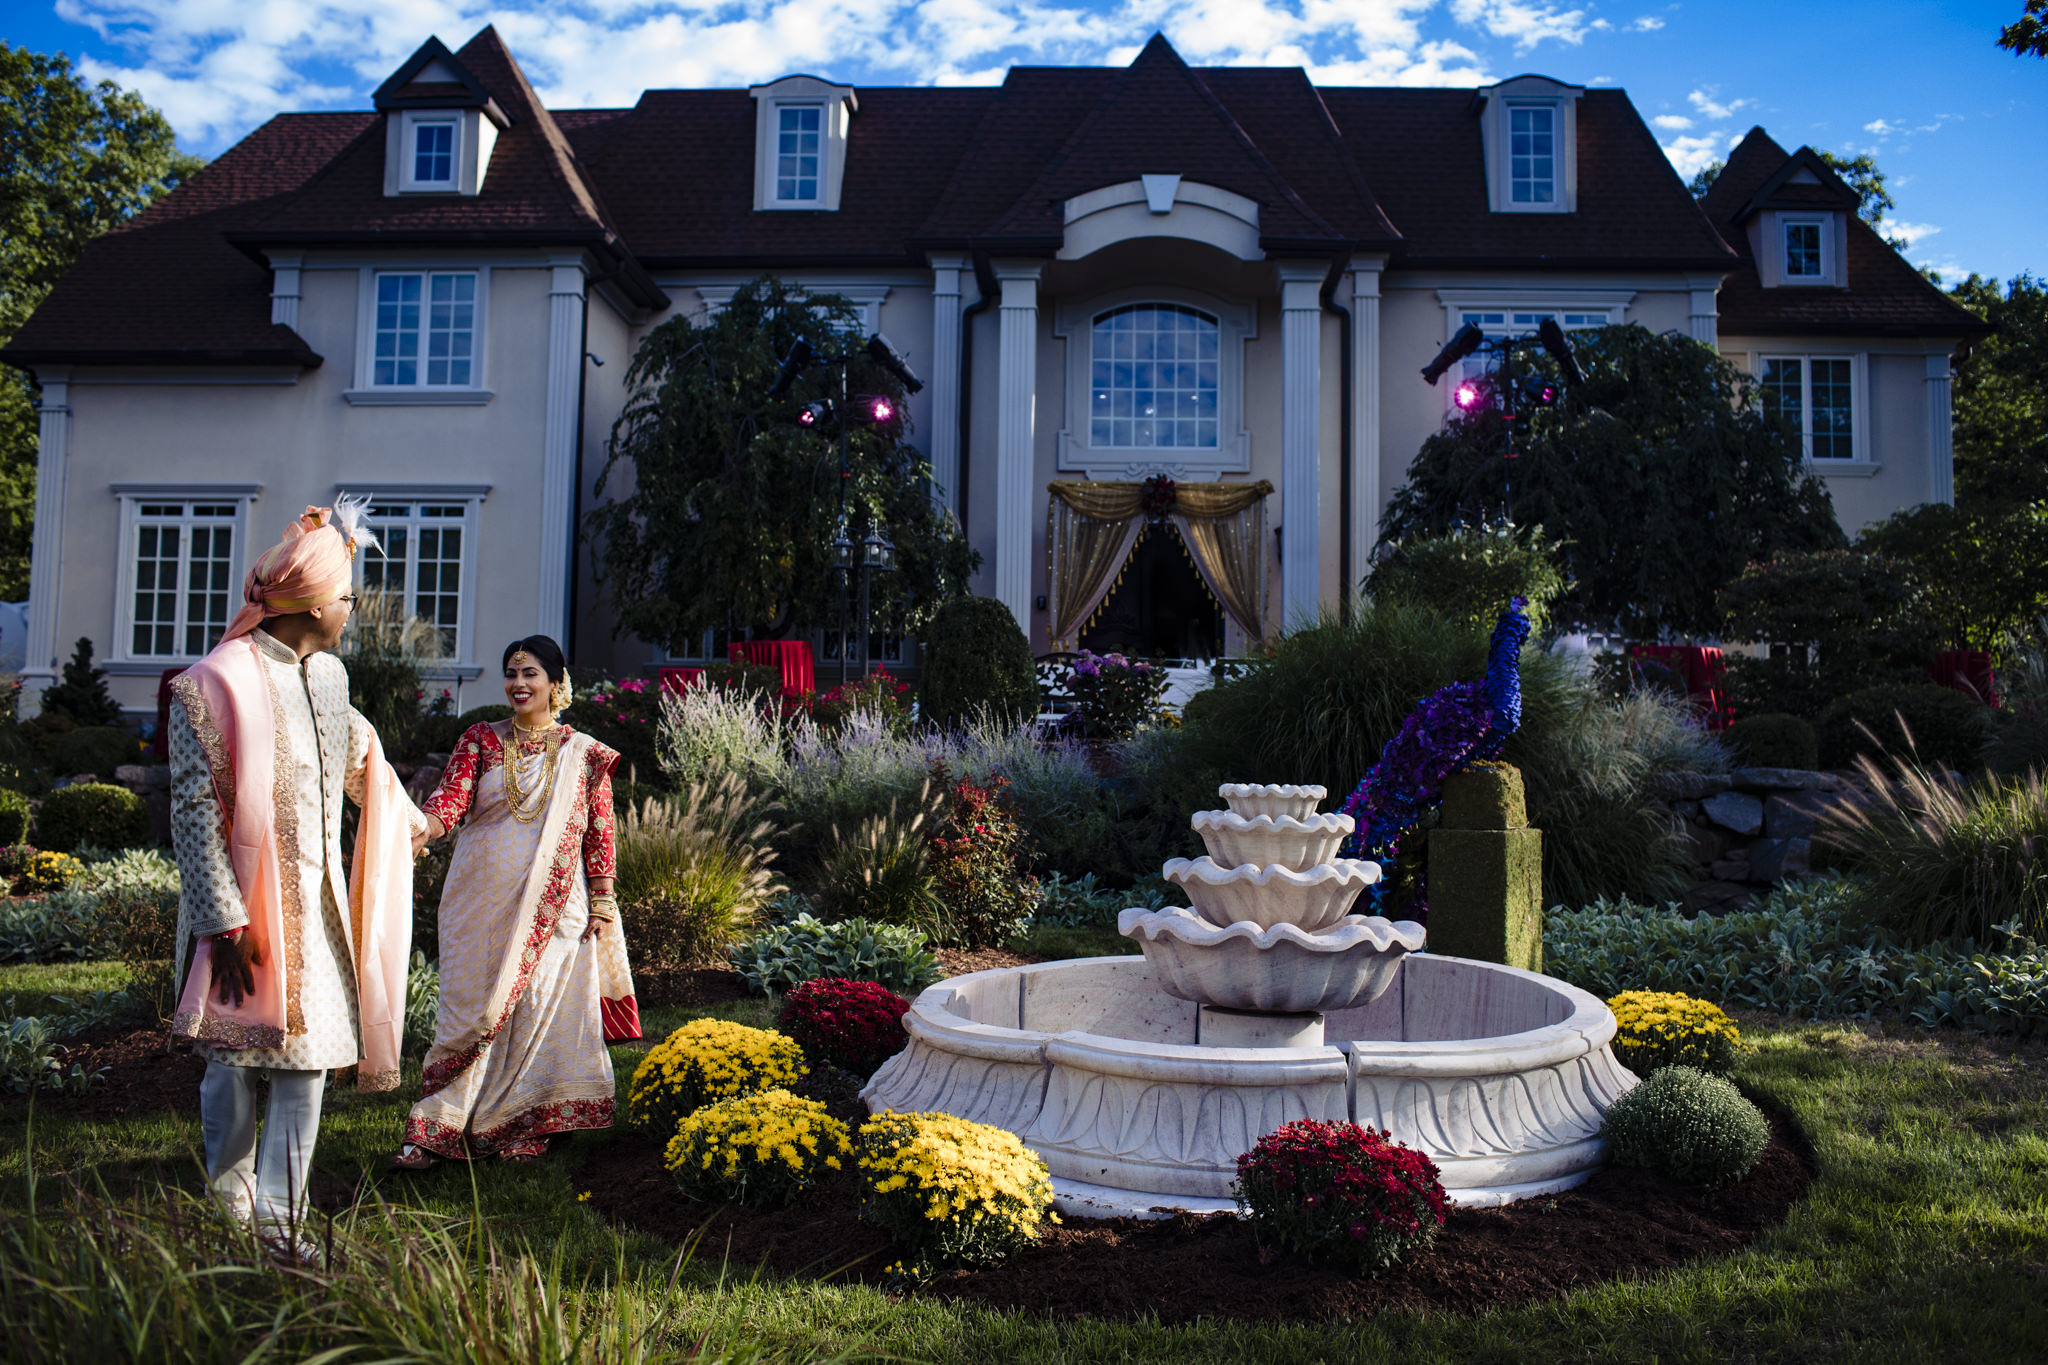 new-jersey-weddings-krishna-natansh-14.jpg